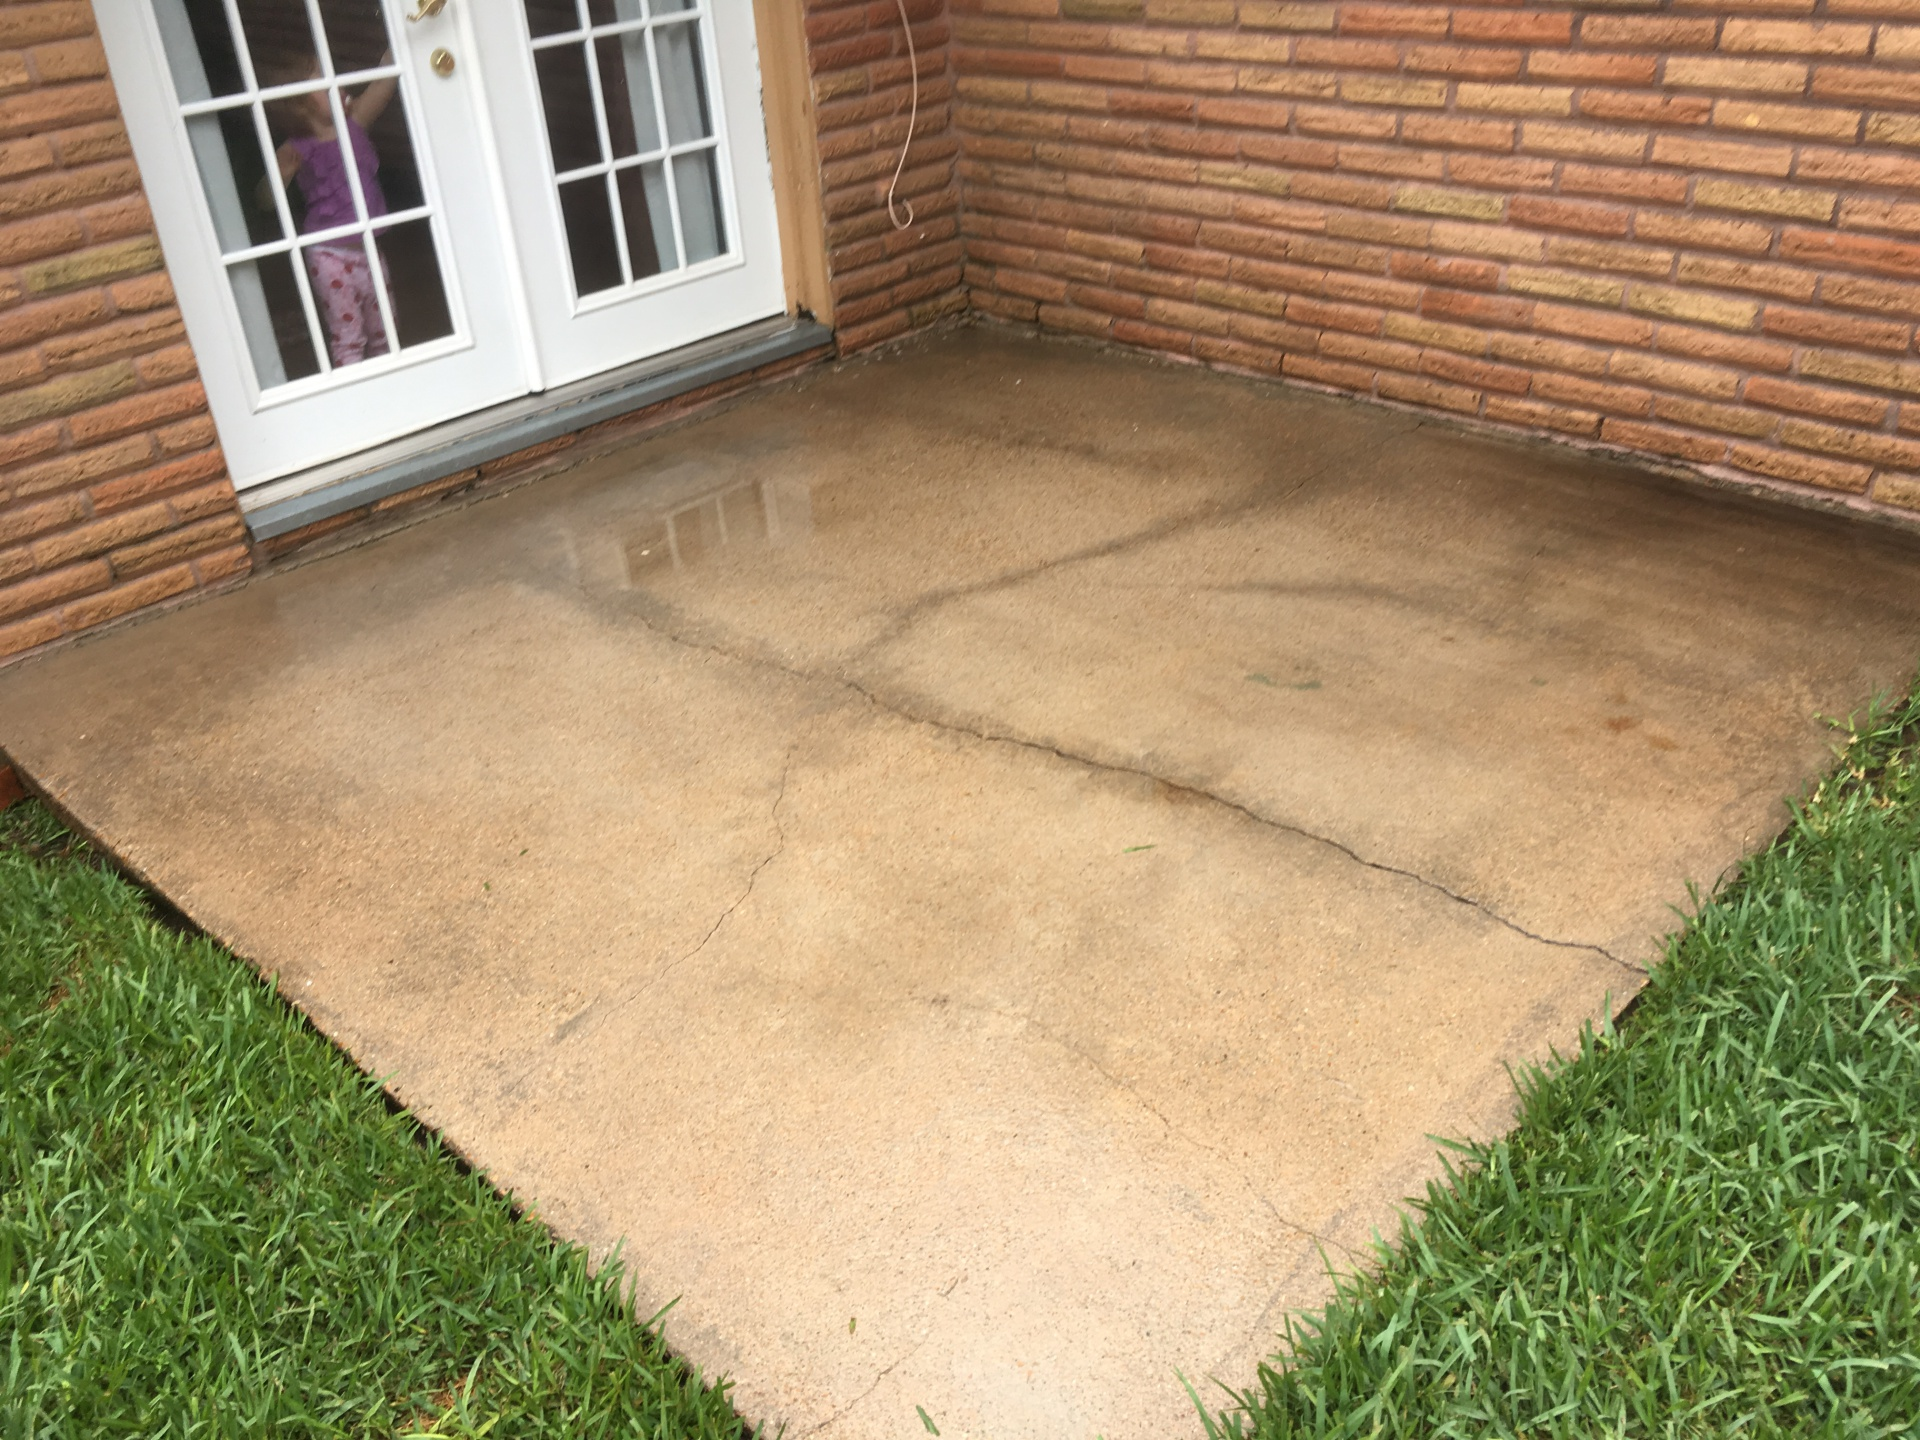 Soft wash to remove mold and mildew and concrete pressure washing